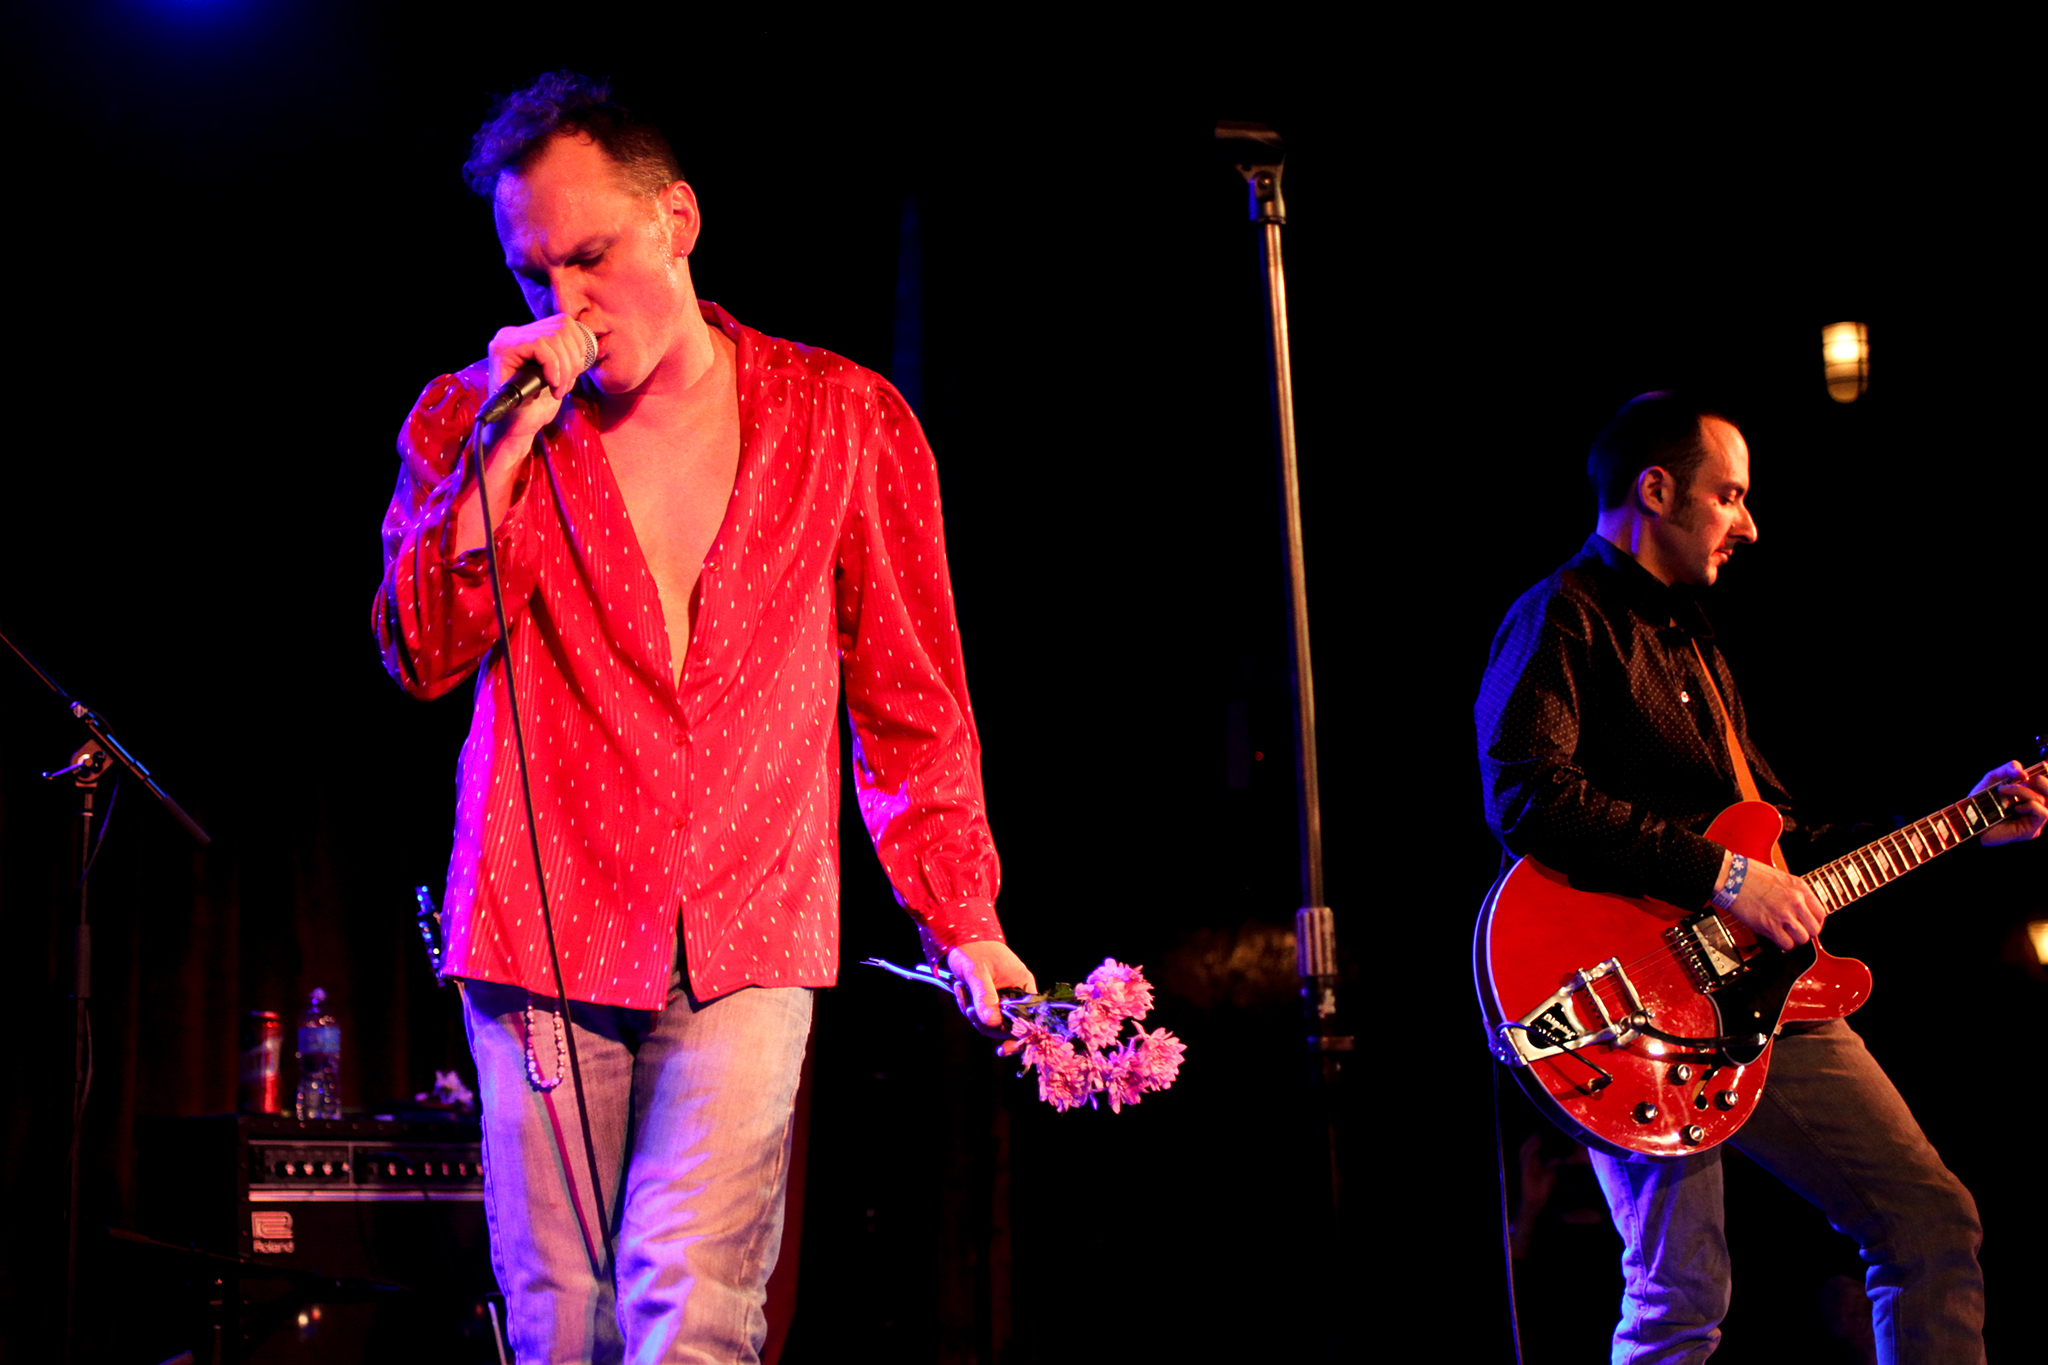 The Bell House: The Sons & Heirs, a Tribute to the Smiths and Morrissey